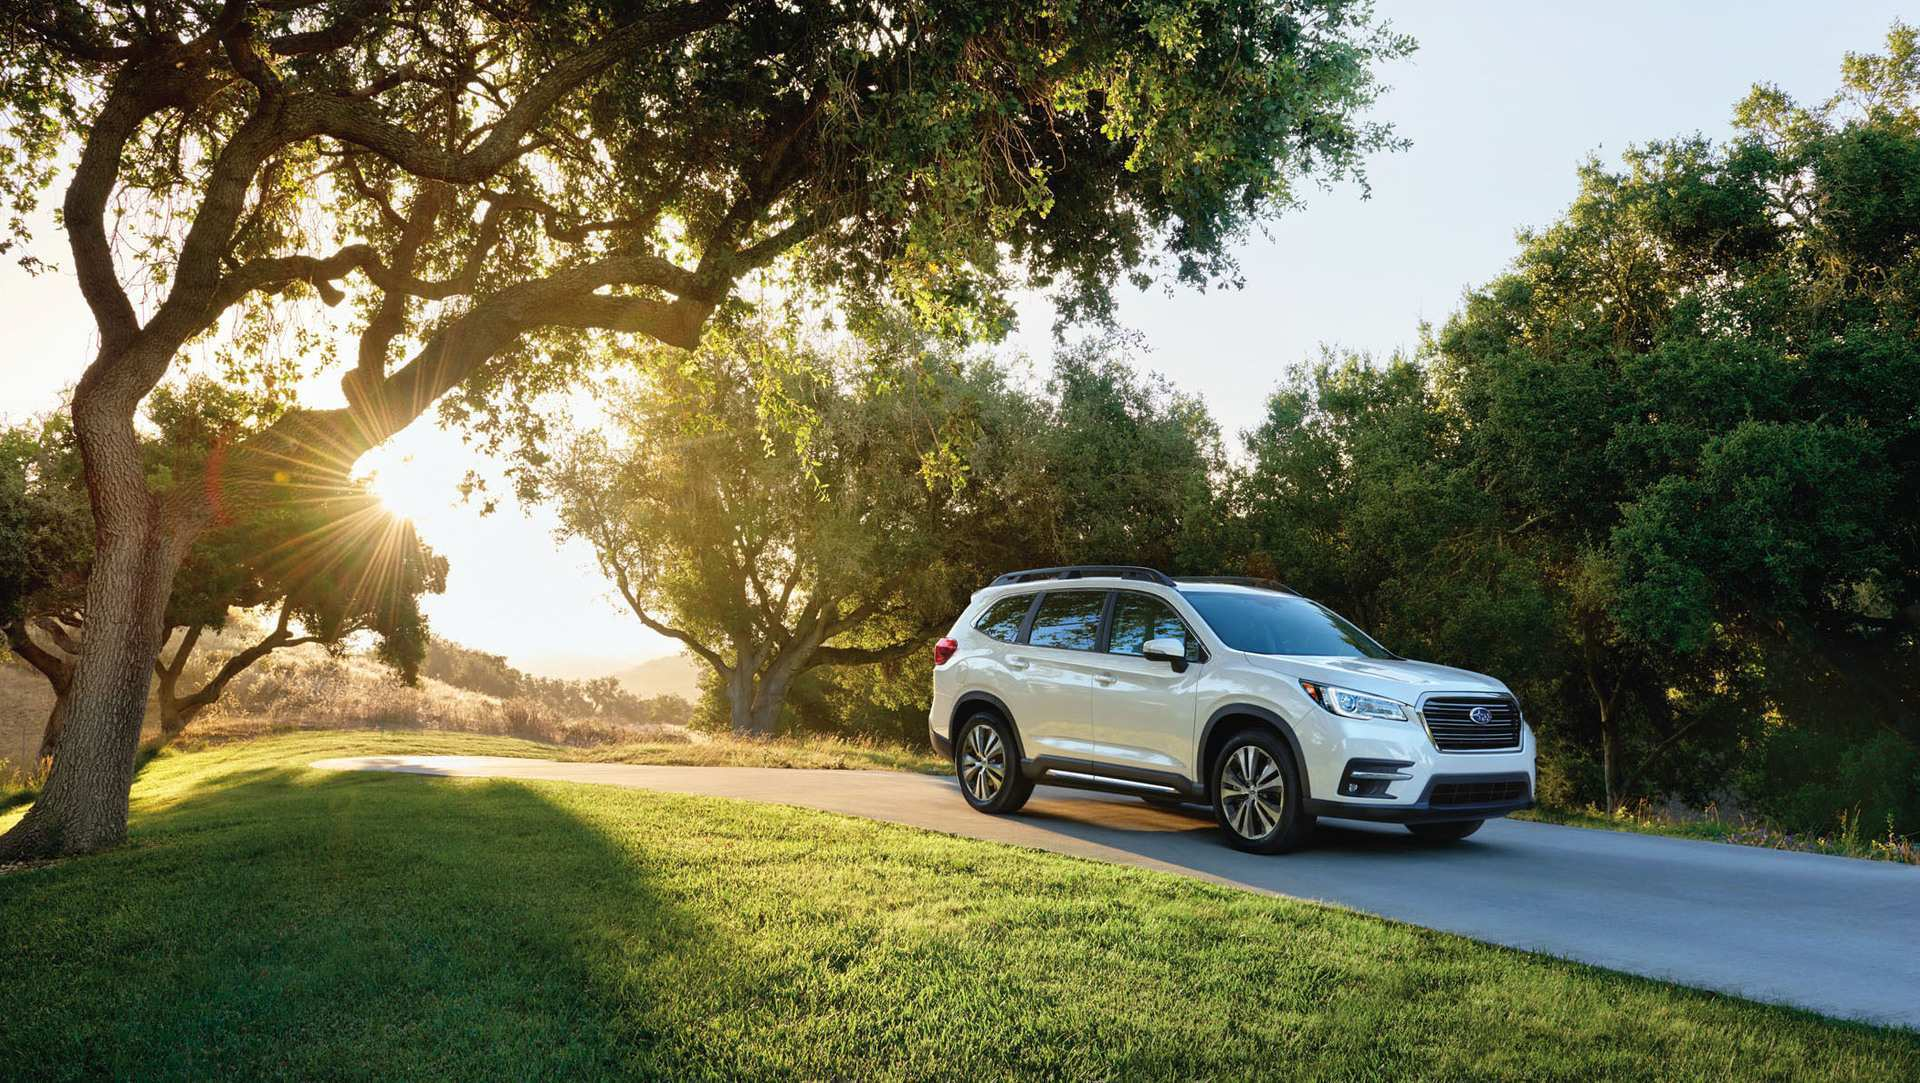 65 Best Review 2019 Subaru Ascent Vs Honda Pilot Vs Toyota Highlander Rumors with 2019 Subaru Ascent Vs Honda Pilot Vs Toyota Highlander